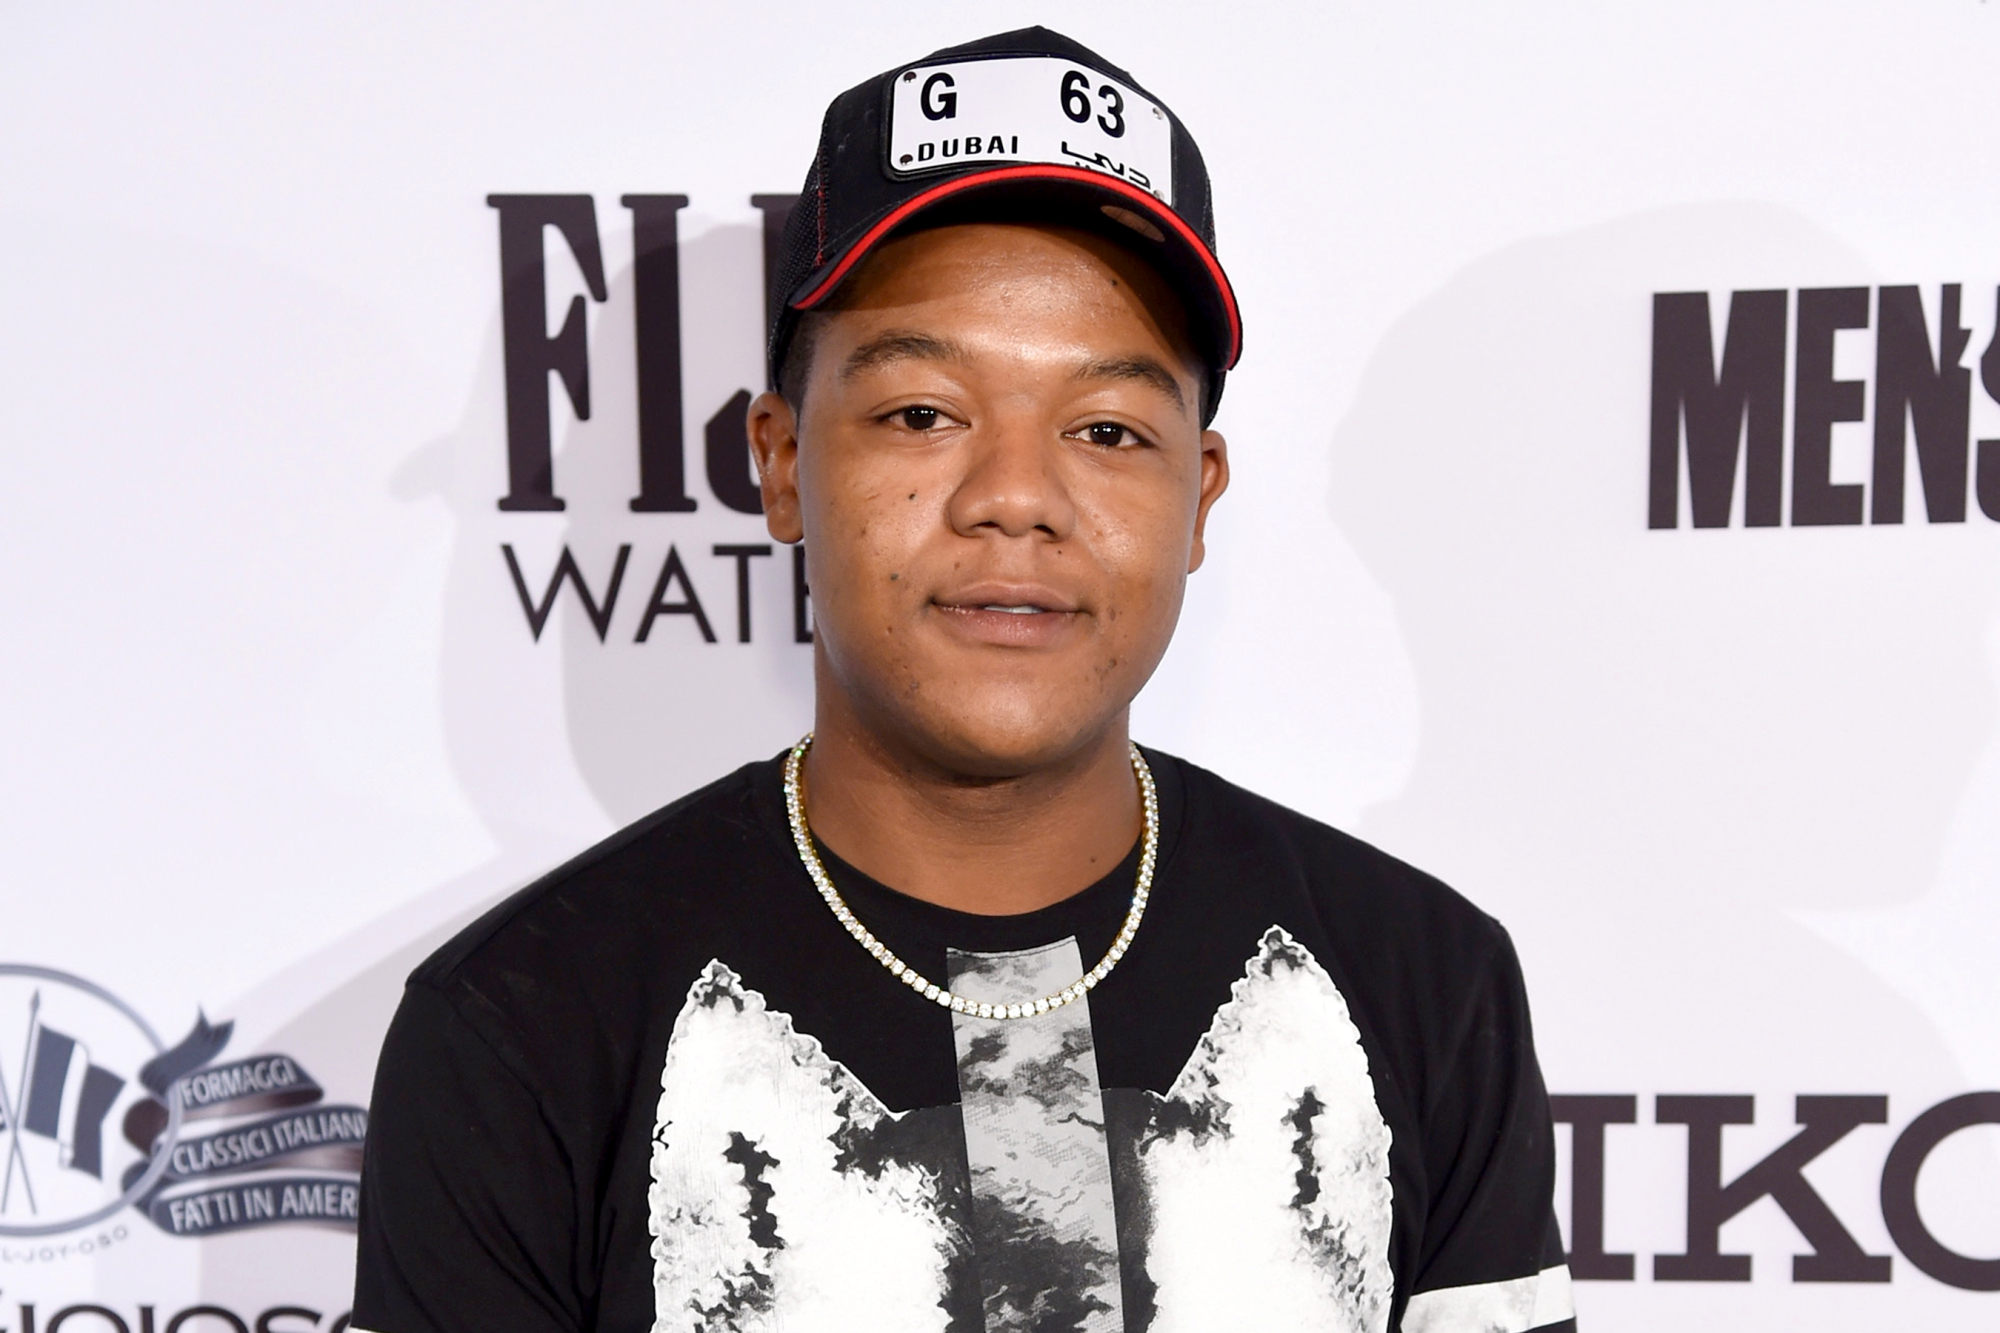 Kyle Massey, Cory Baxter From 'That's So Raven' Is Reportedly Sued For Sexual Misconduct With A Minor